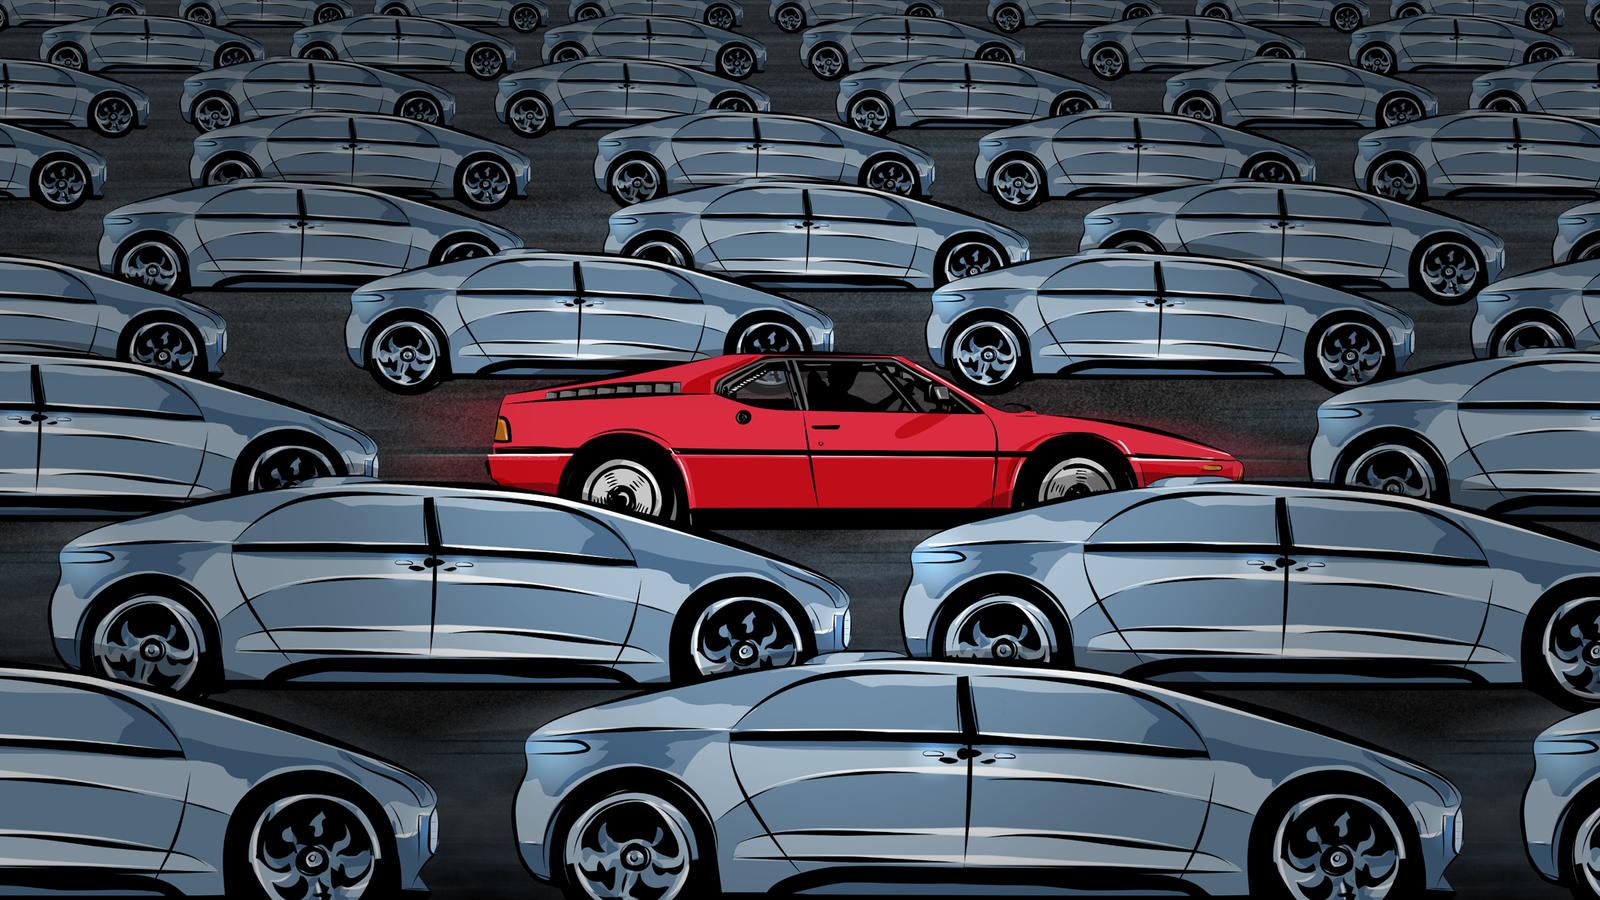 Best Car For Uber >> How Science Fiction Failed Us: The Real Future Of Autonomous Cars